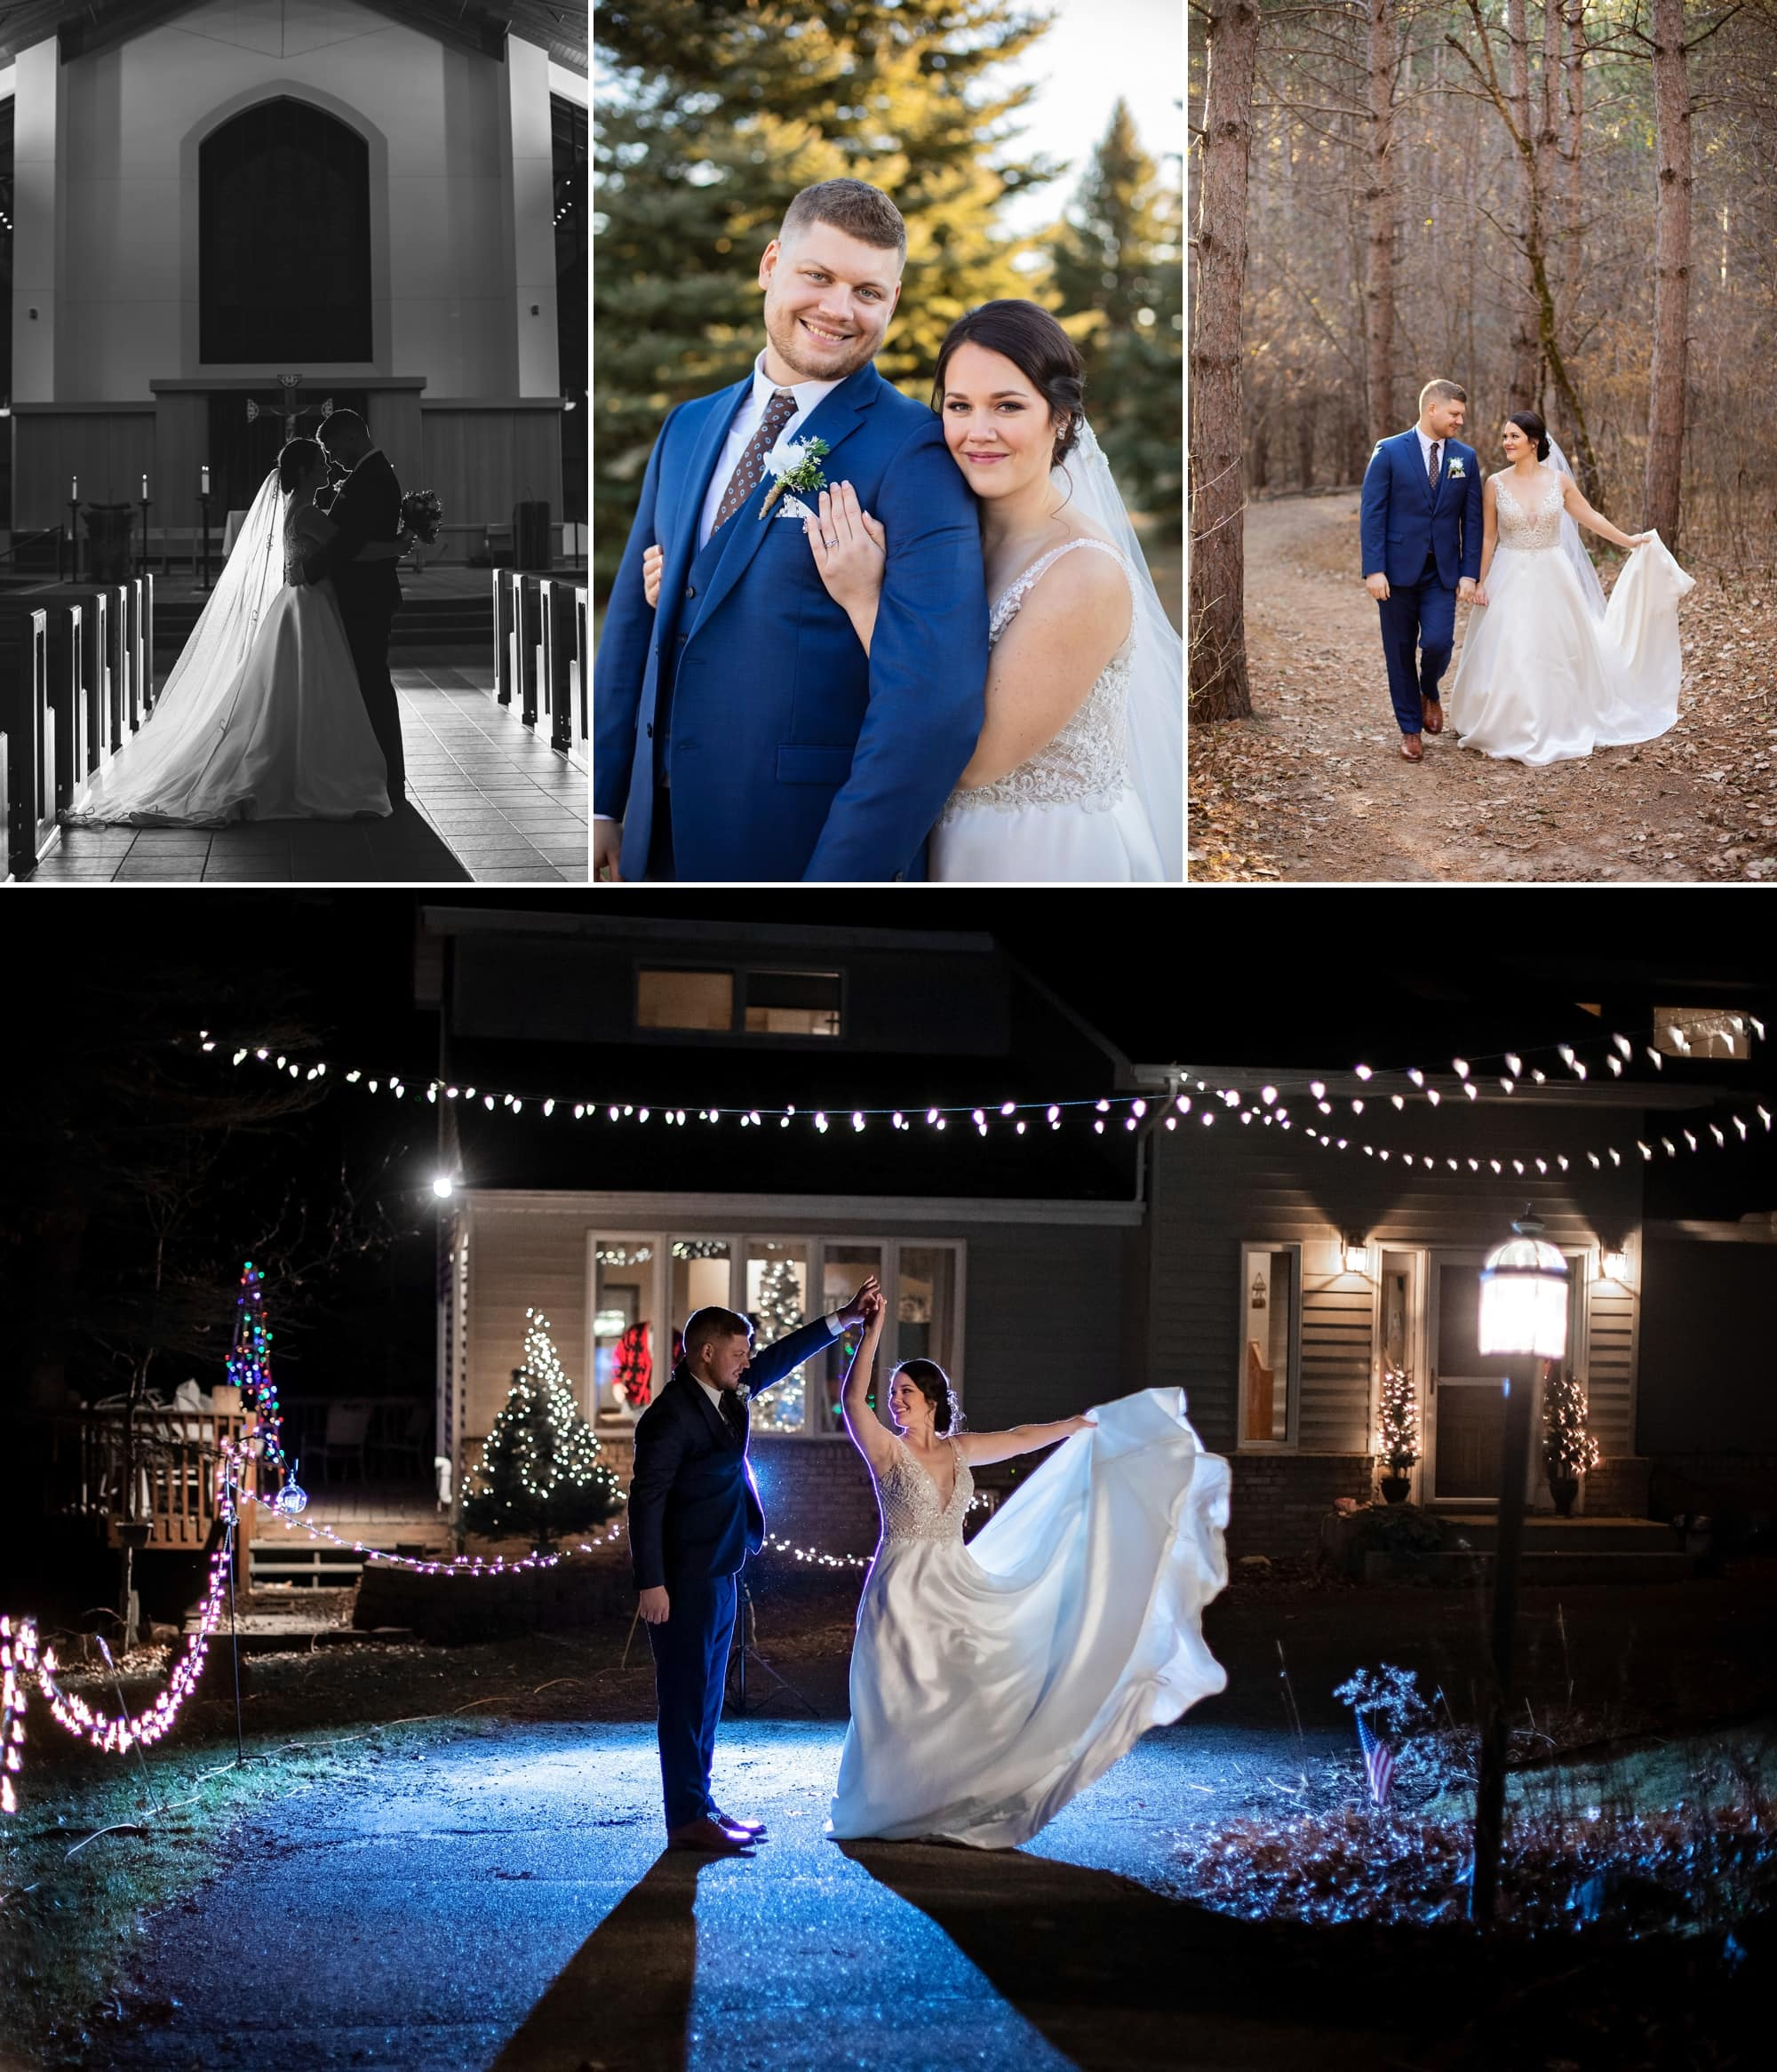 Gallery of bride and groom portraits at St. Joseph's Church in Rosemount, Minnesota.